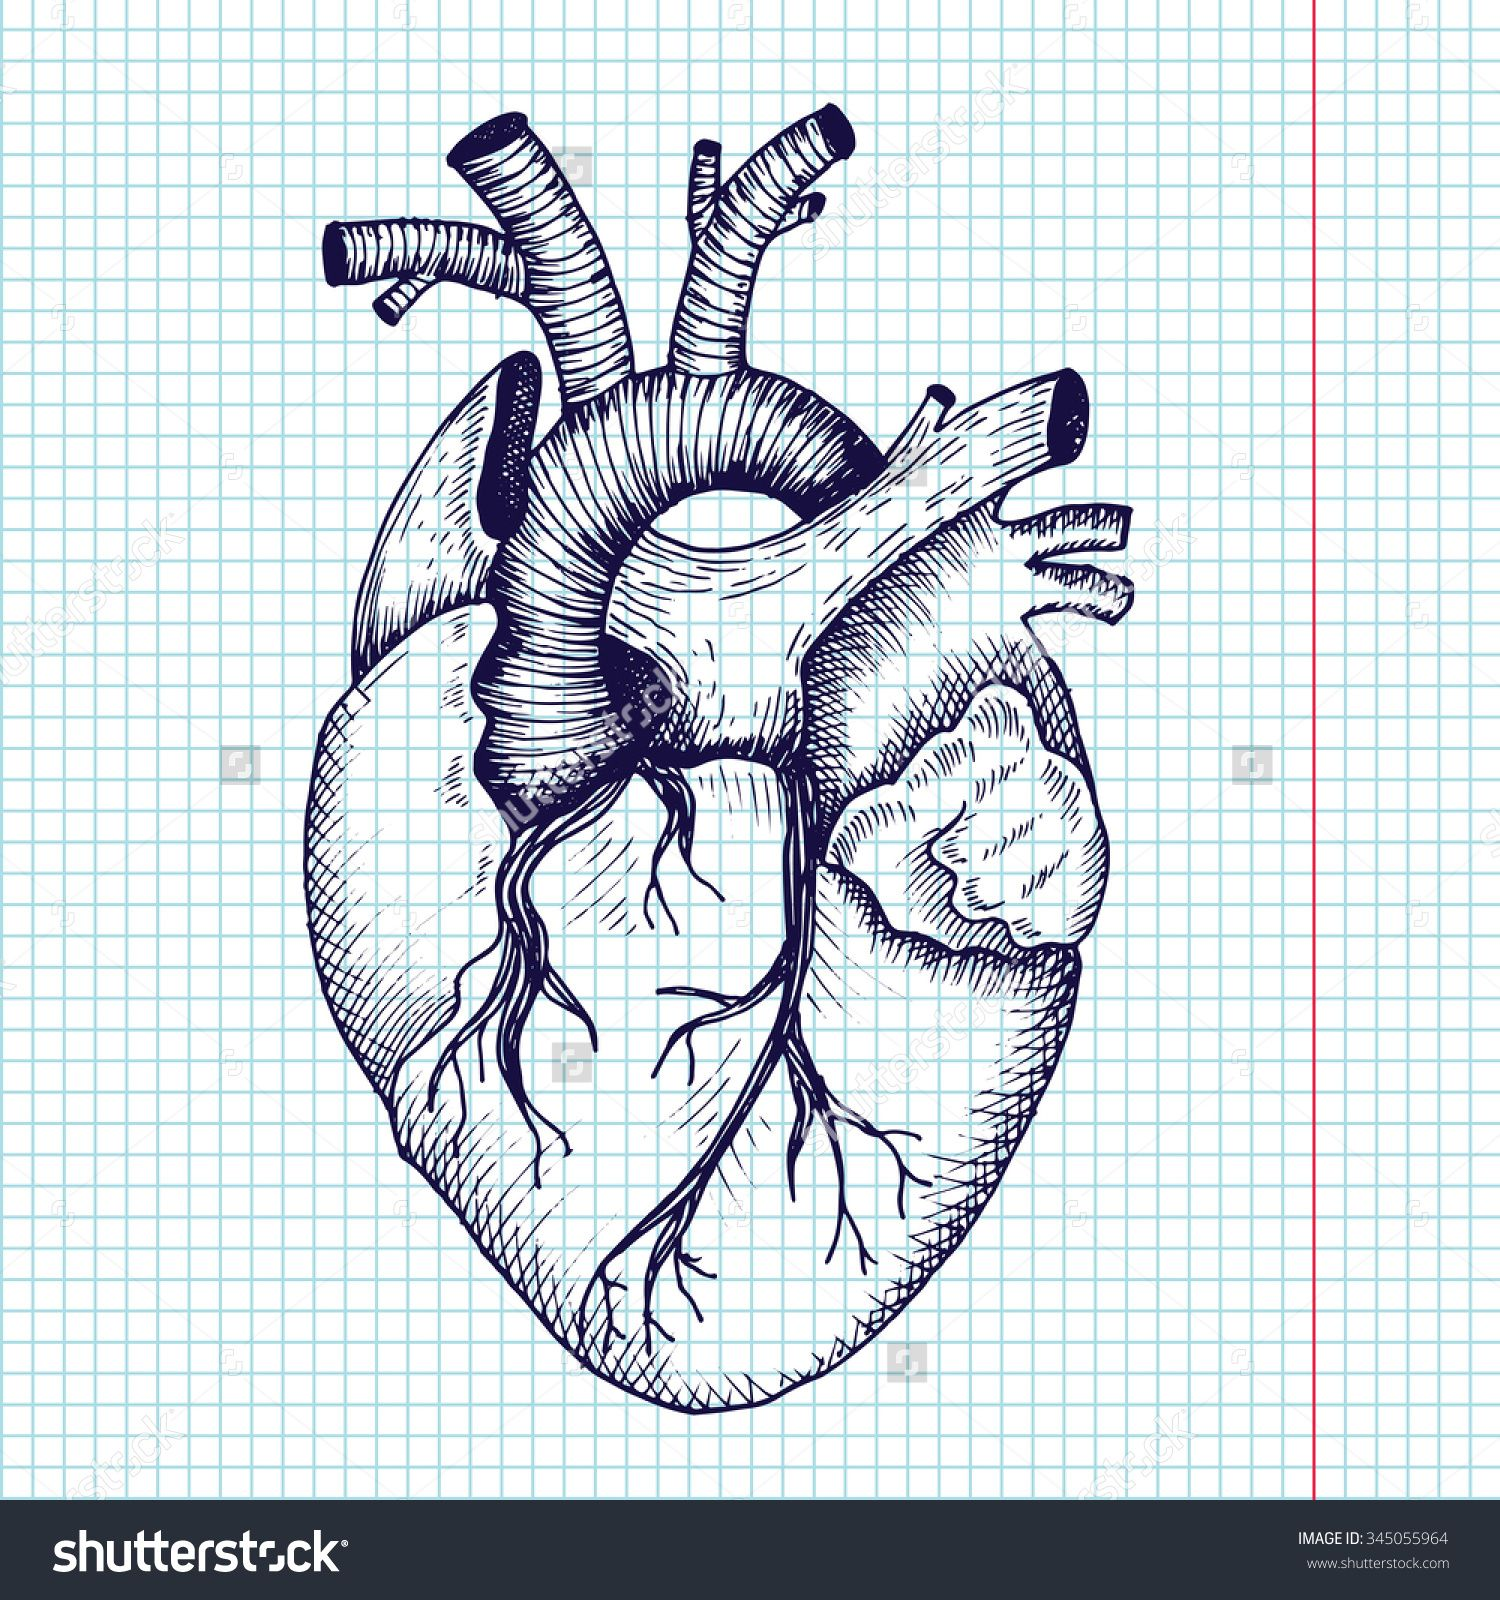 stock-vector-anatomical-heart-vector-vintage-style-detailed ...